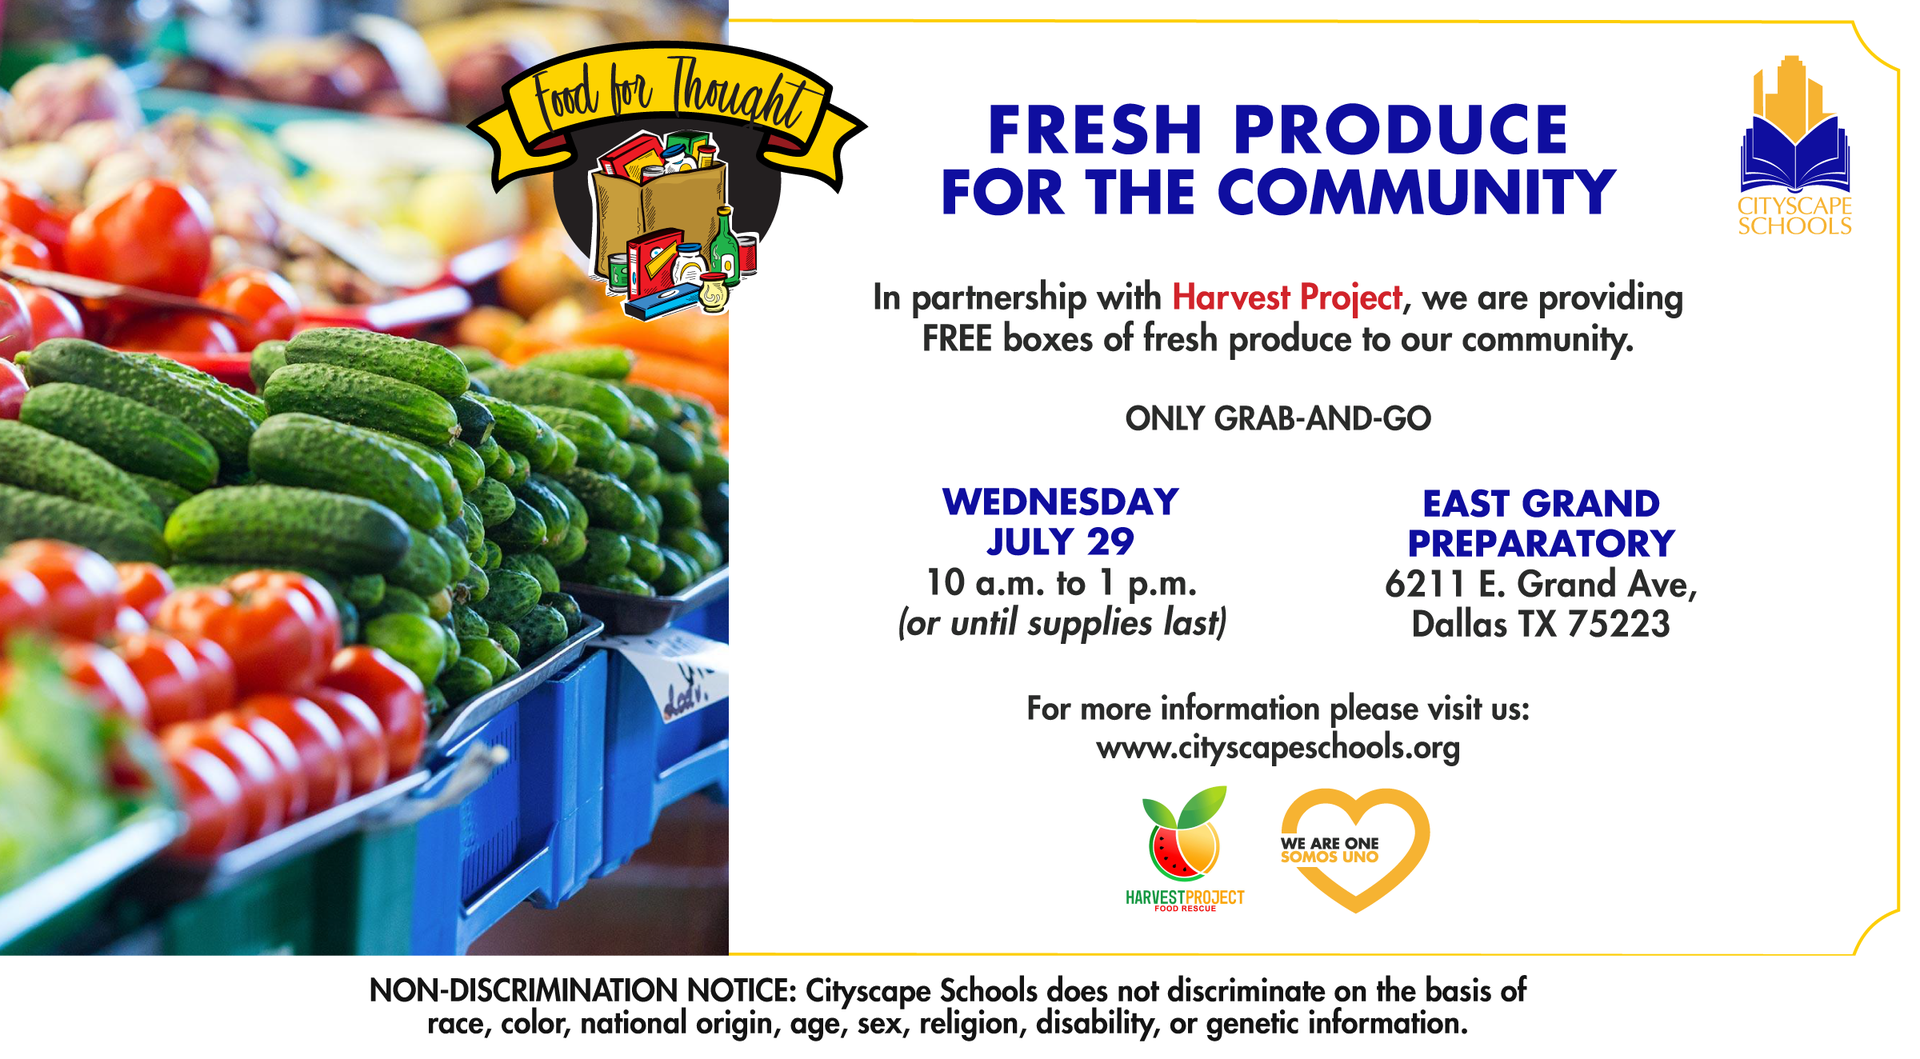 Fresh produce for the community